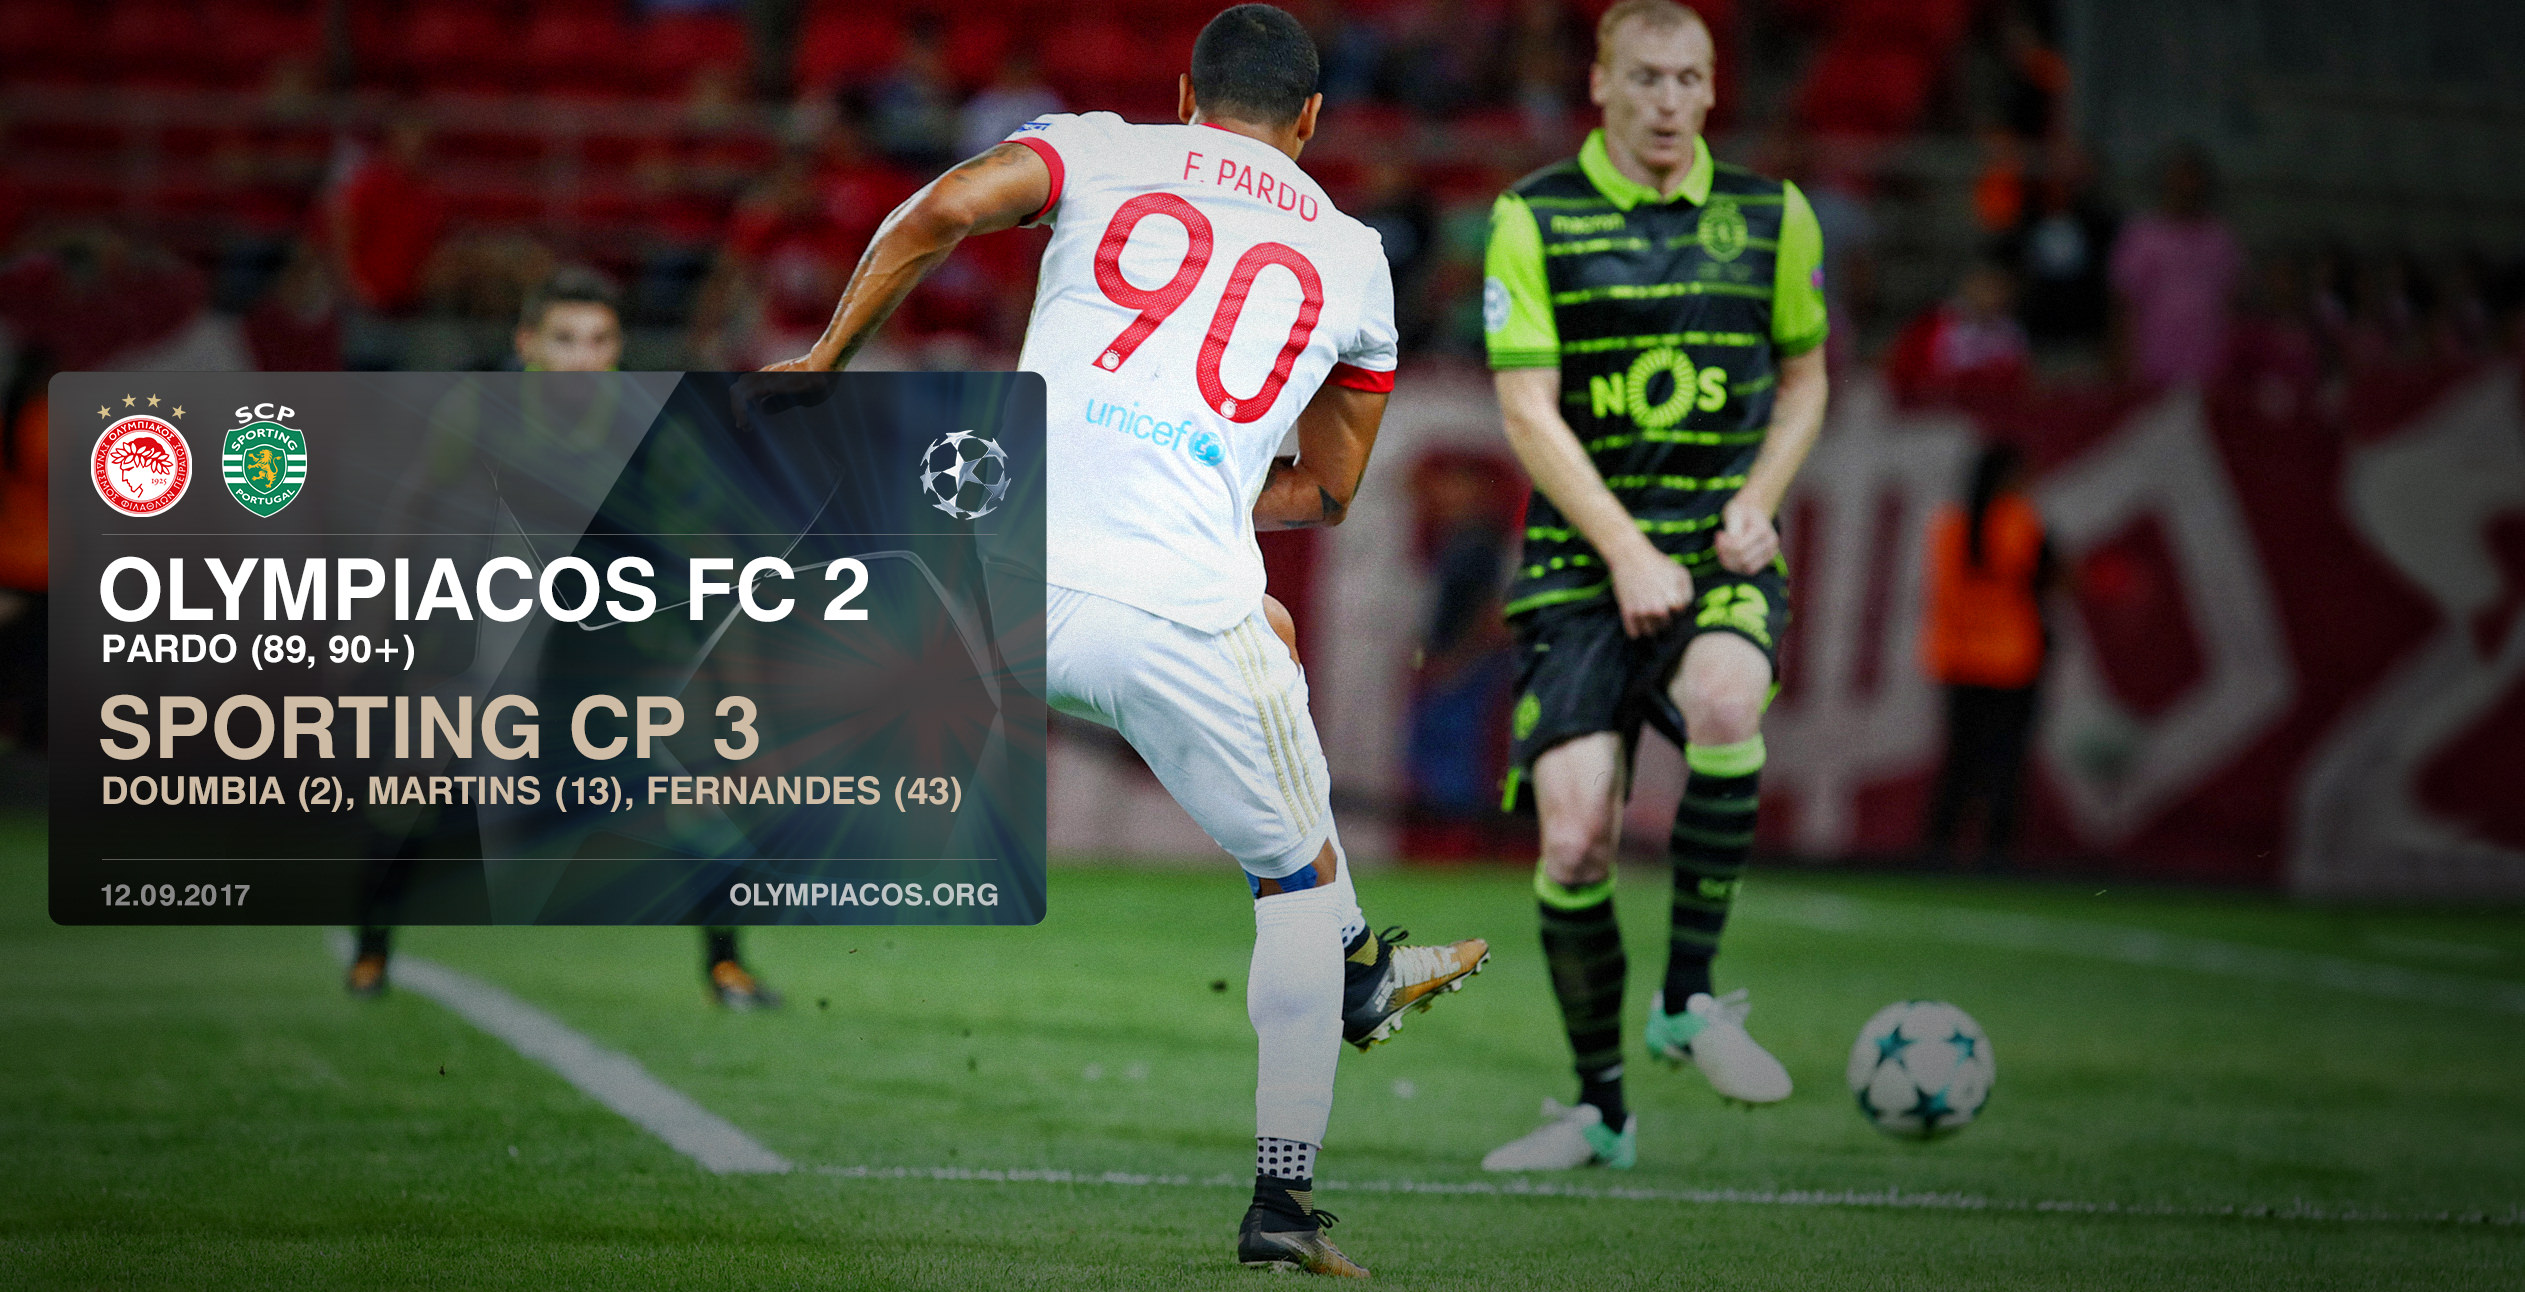 Olympiacos – Sporting 2-3